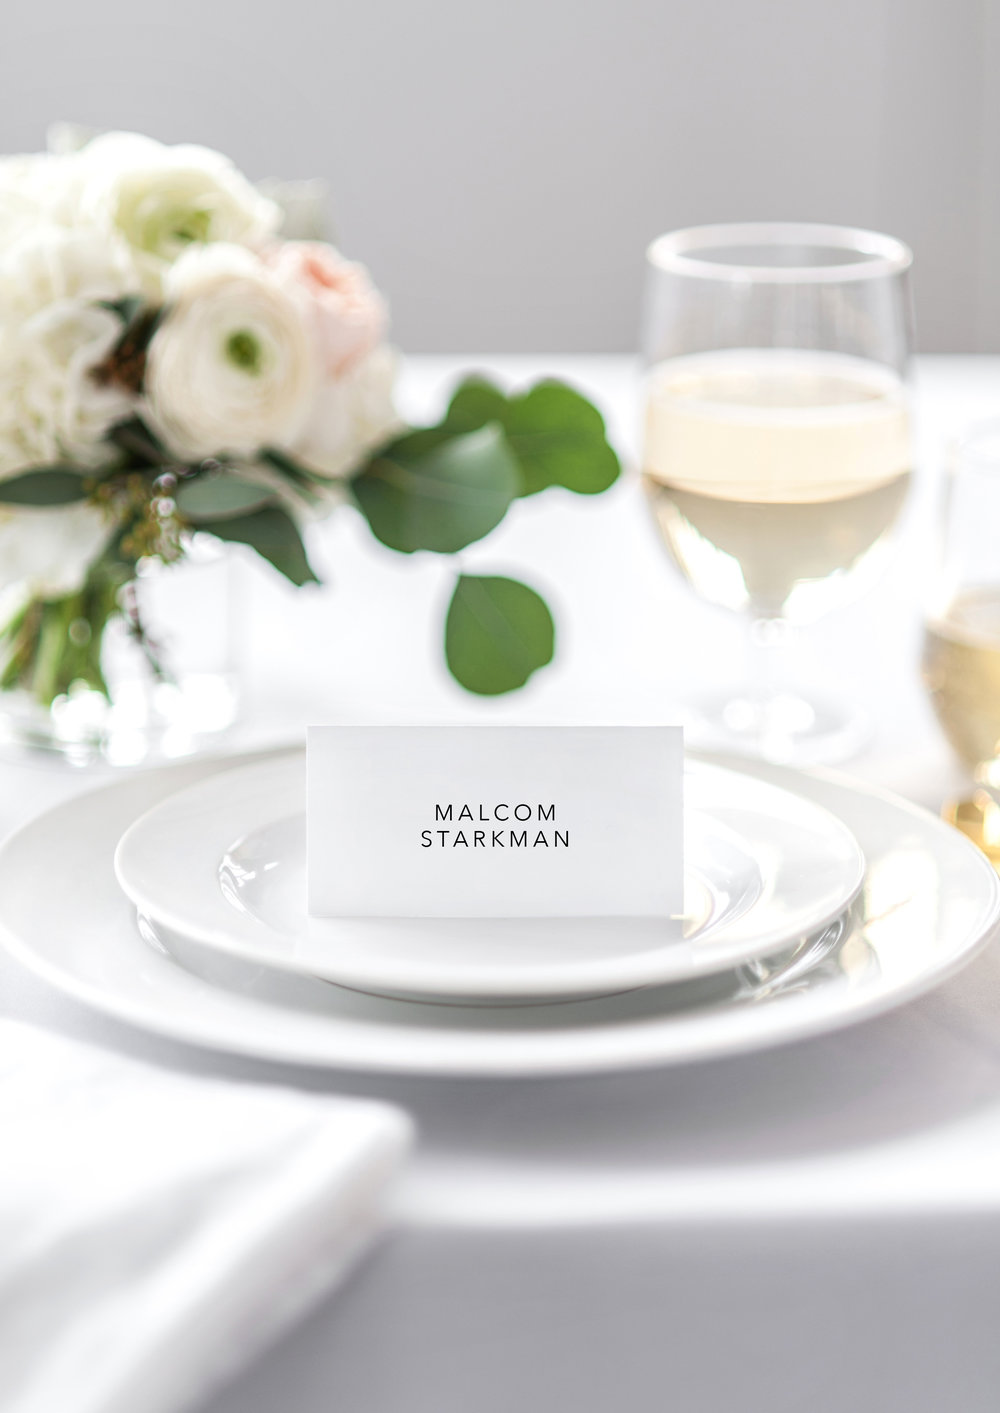 Charlotte and James minimalist placecards